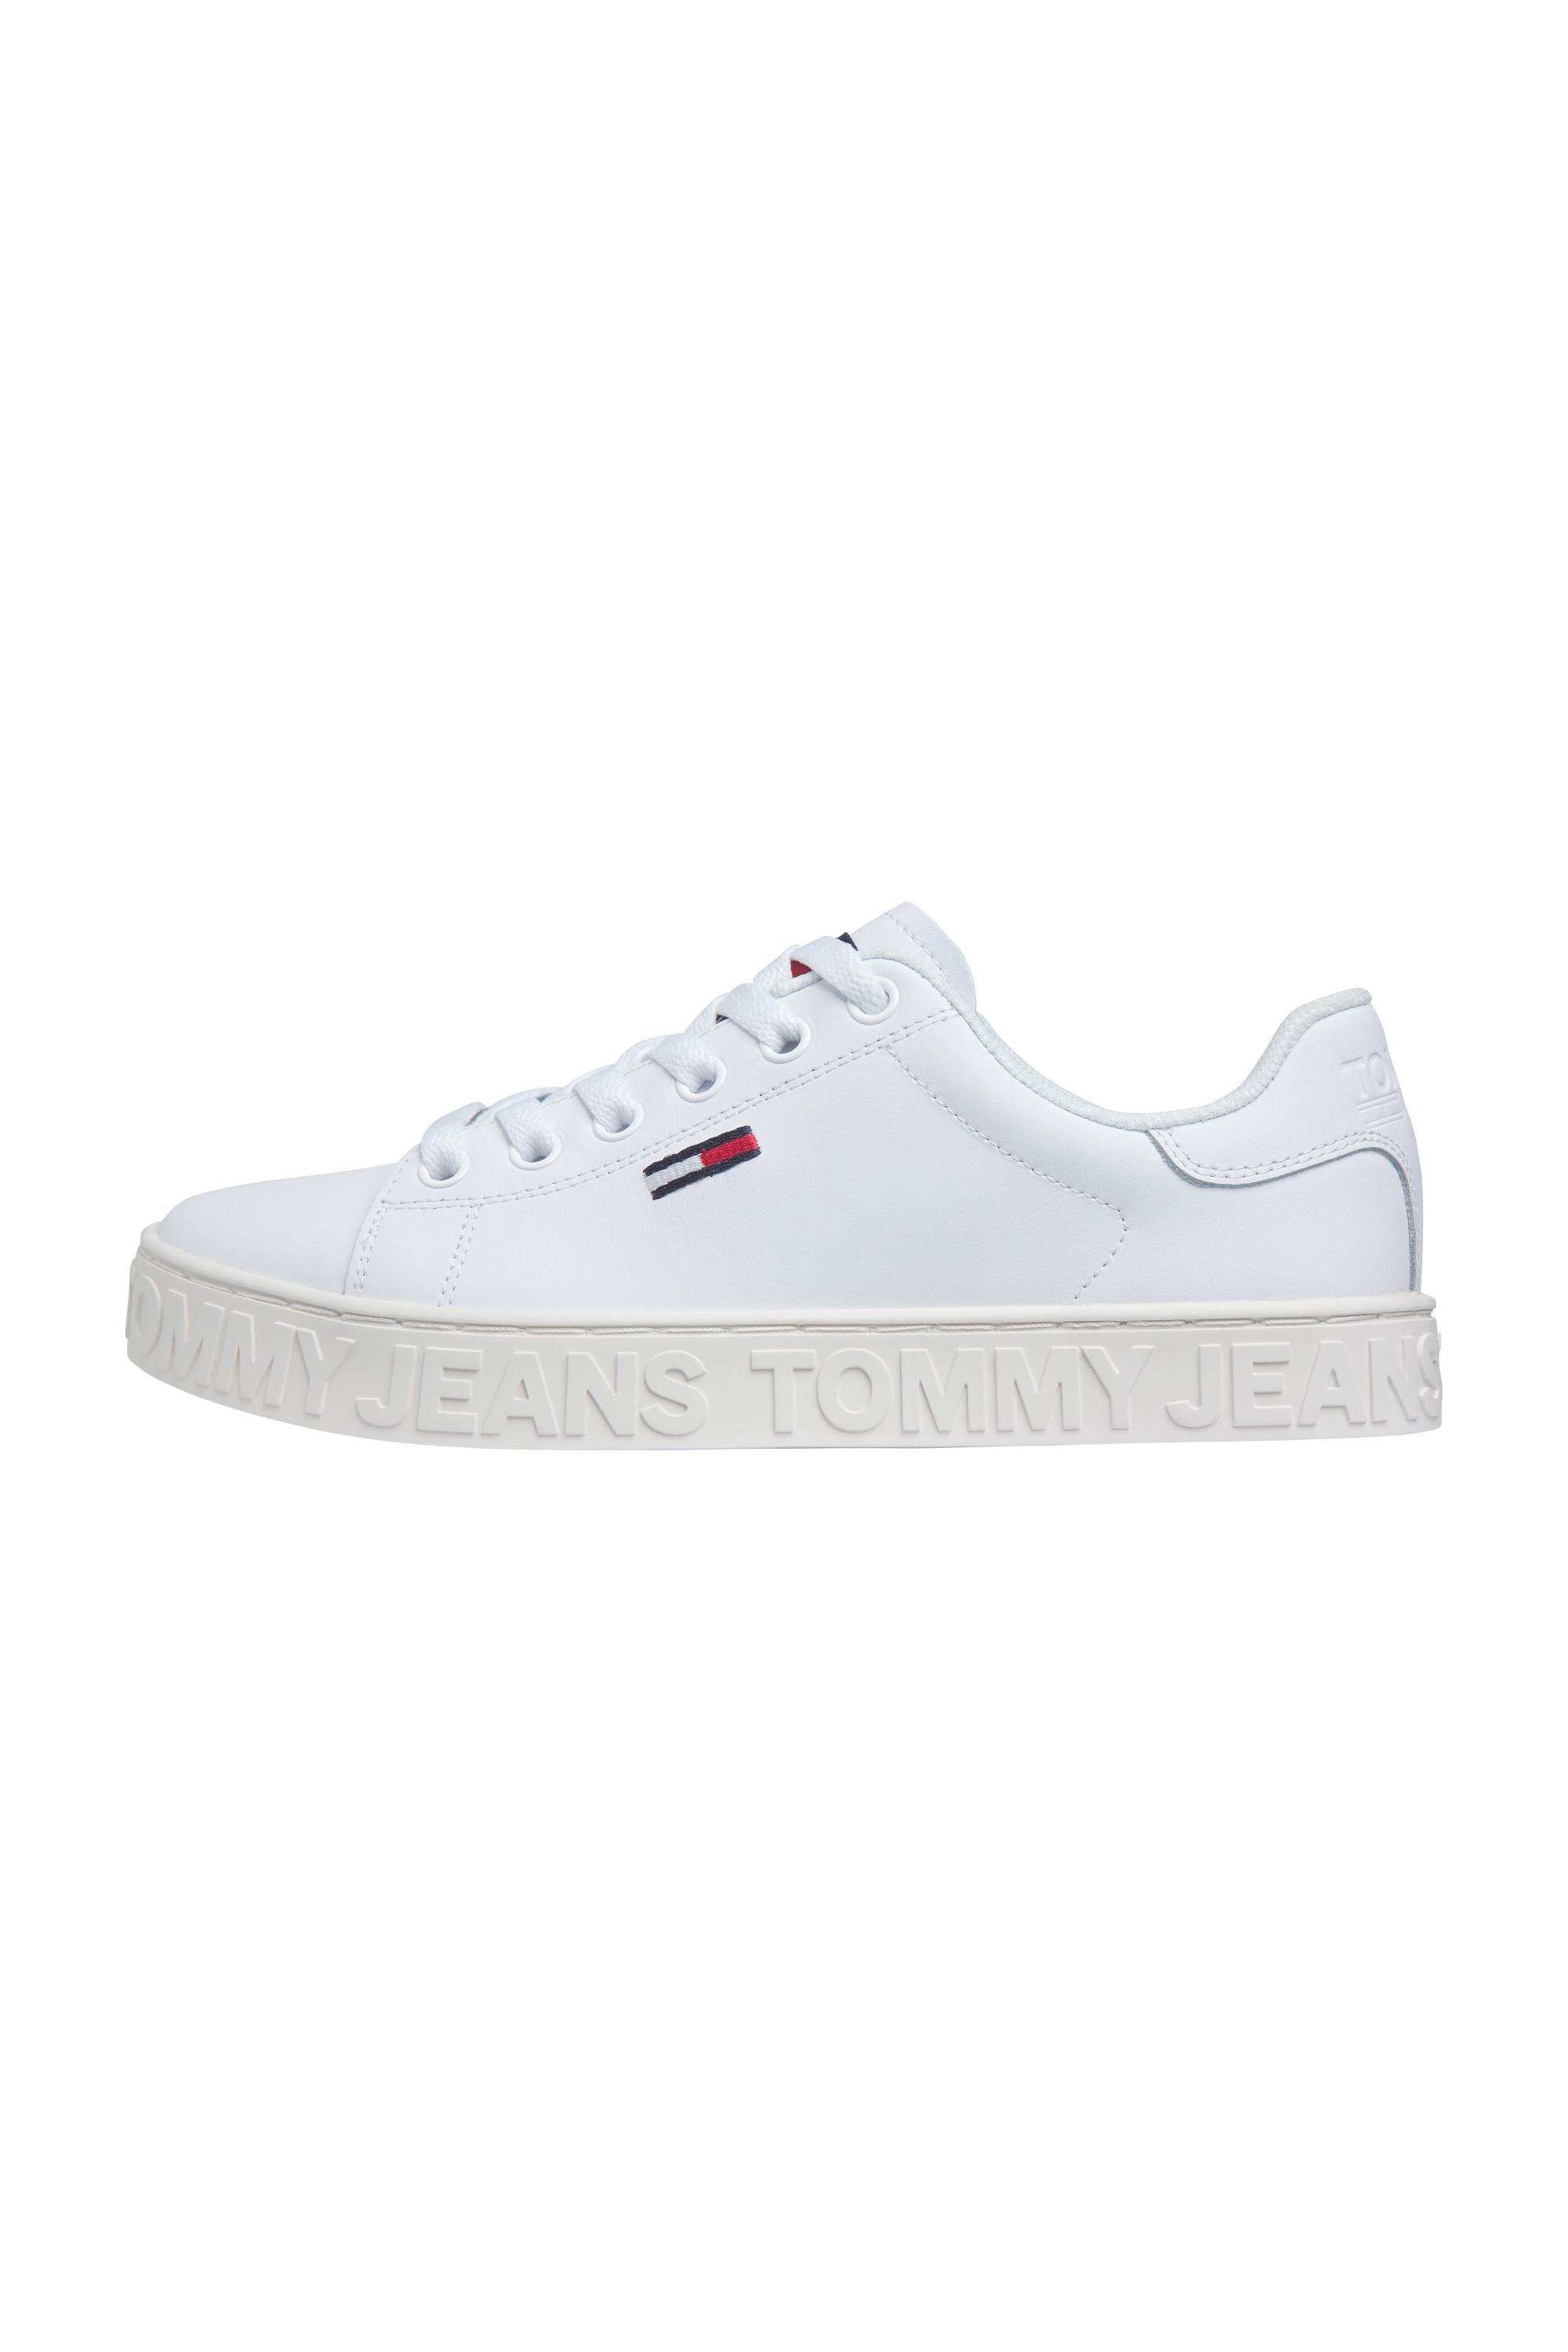 Cool Sneaker - TOMMY HILFIGER - Smith